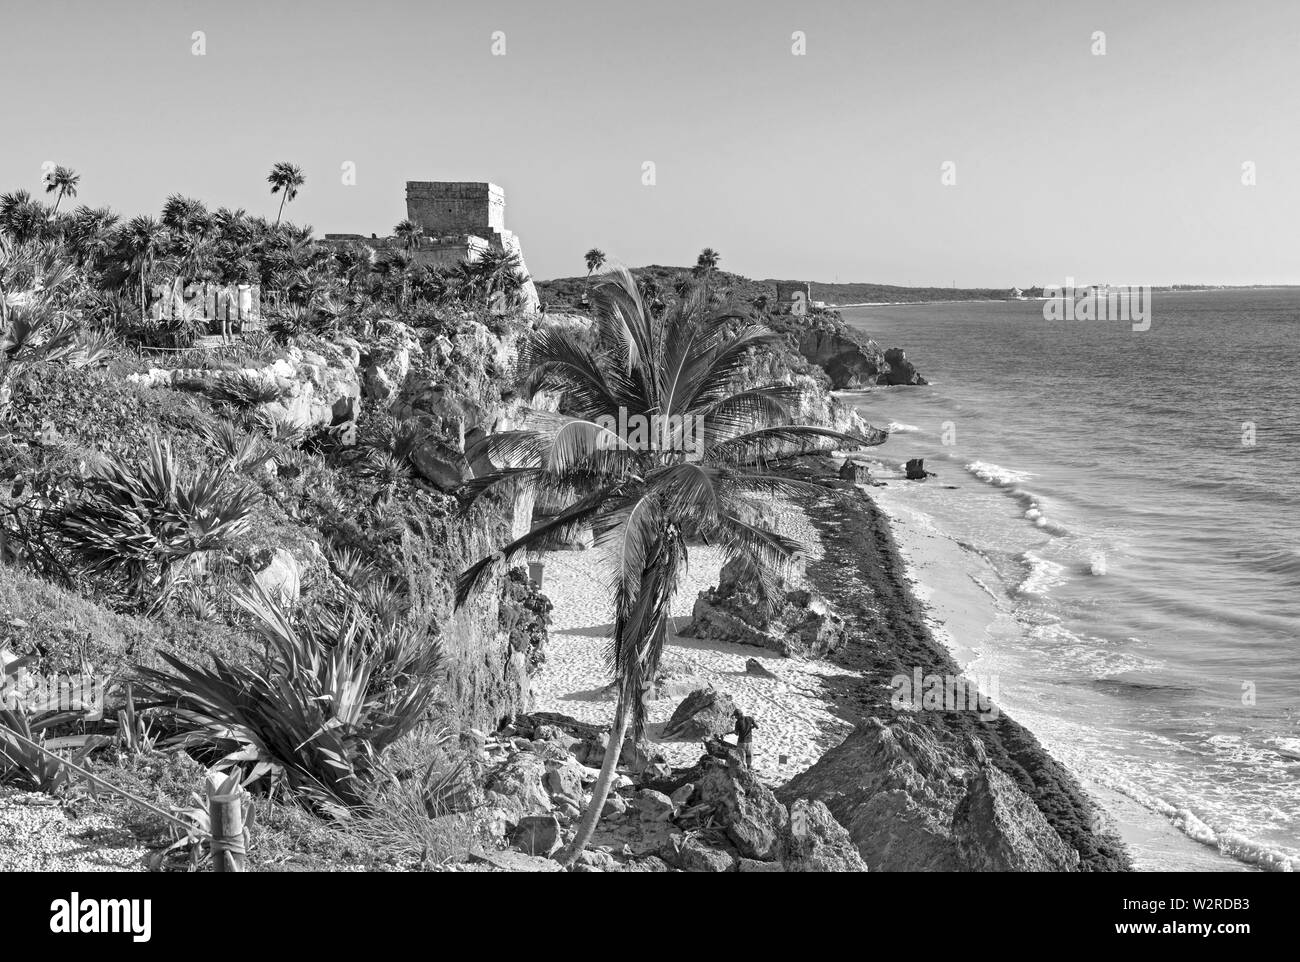 ruins of the mayan city tulum, quintana roo, mexico in black and white - Stock Image